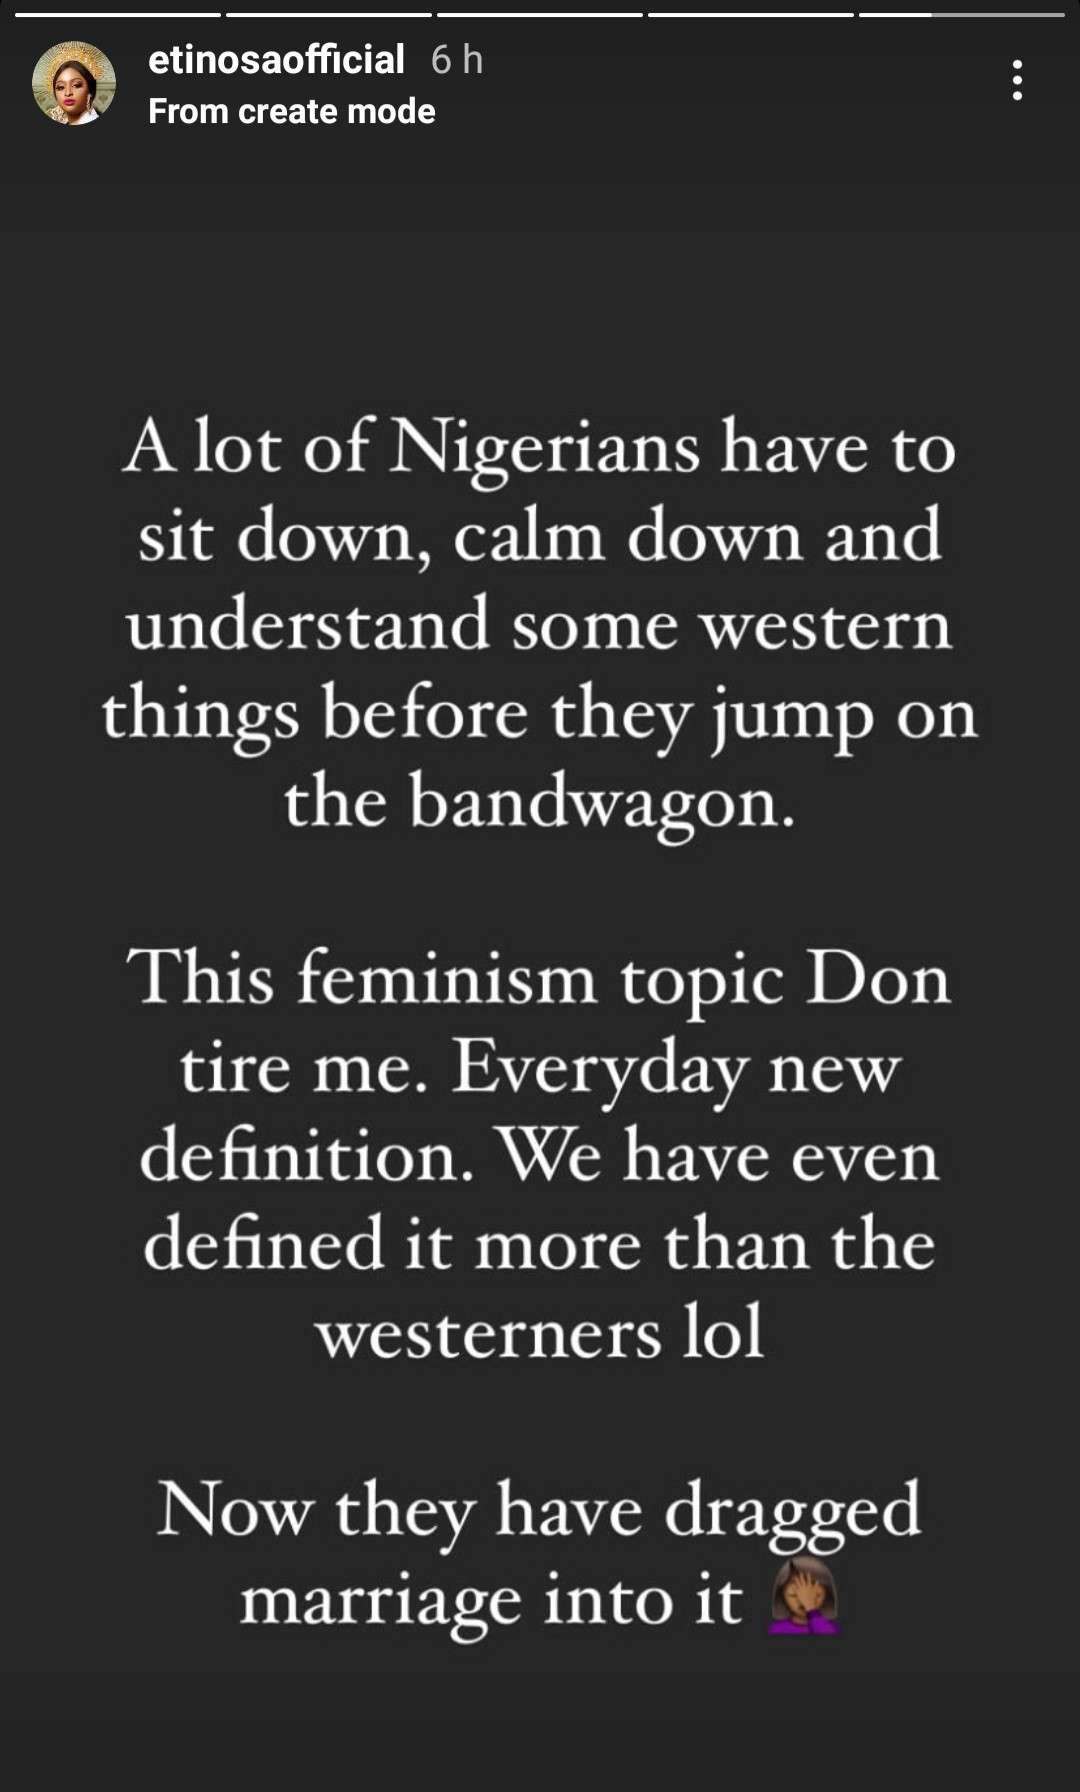 """""""Nigerians have to understand western things before jumping on the bandwagon"""" Etinosa speaks on feminism"""